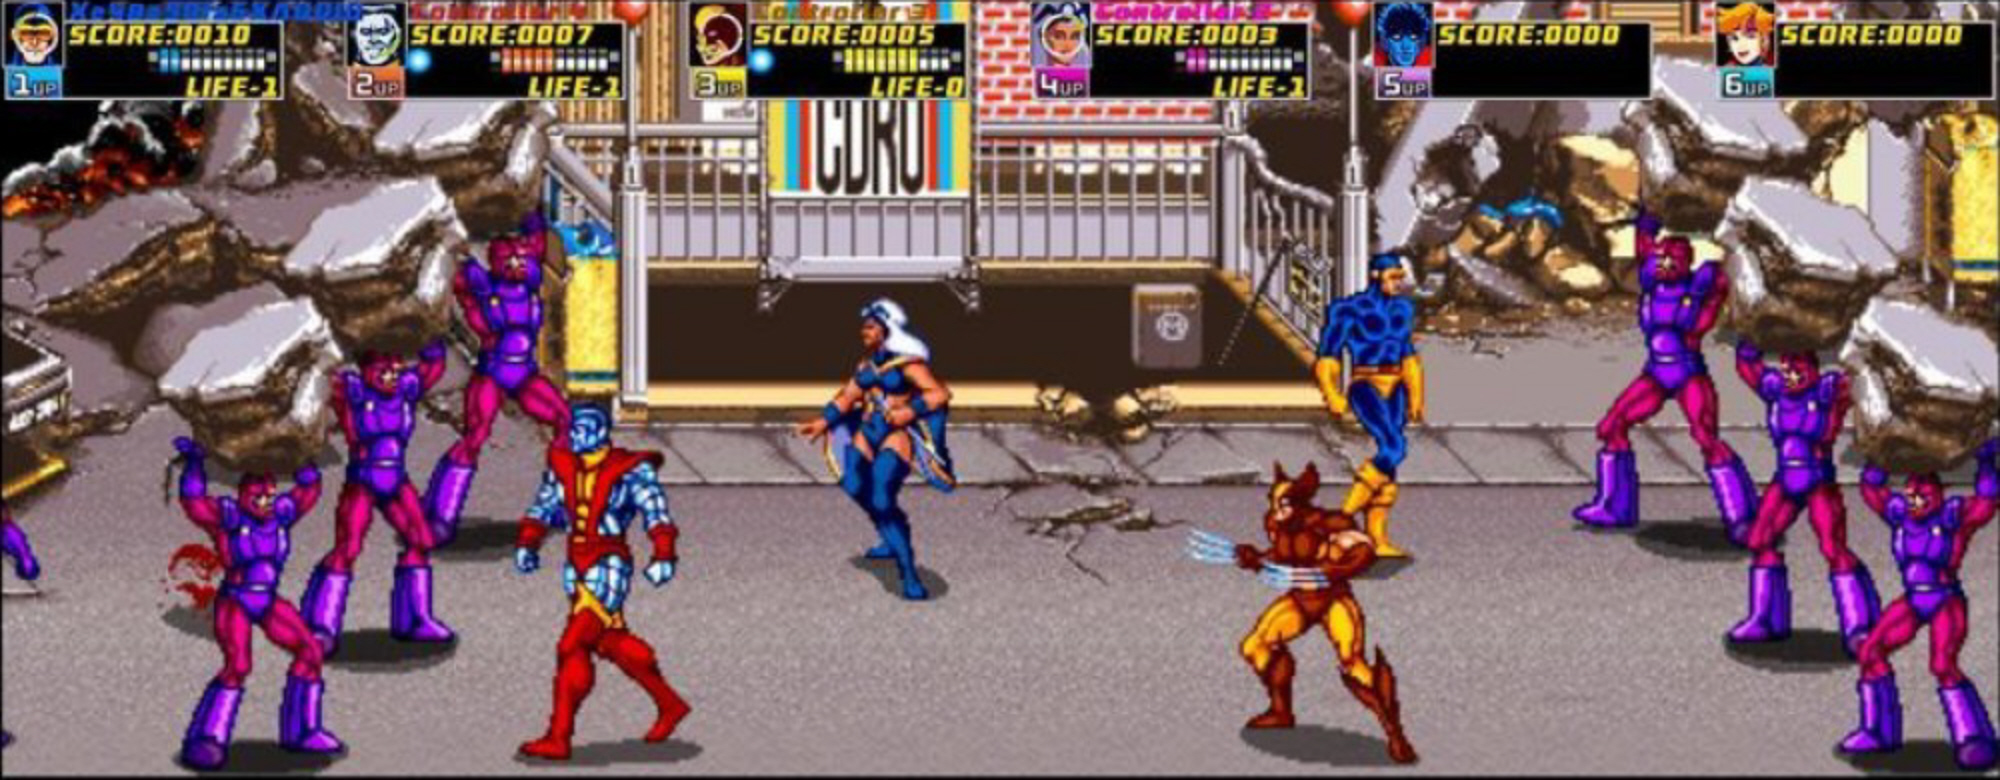 x-men-arcade-game-xbox-live-arcade-playstation-network-screenshot